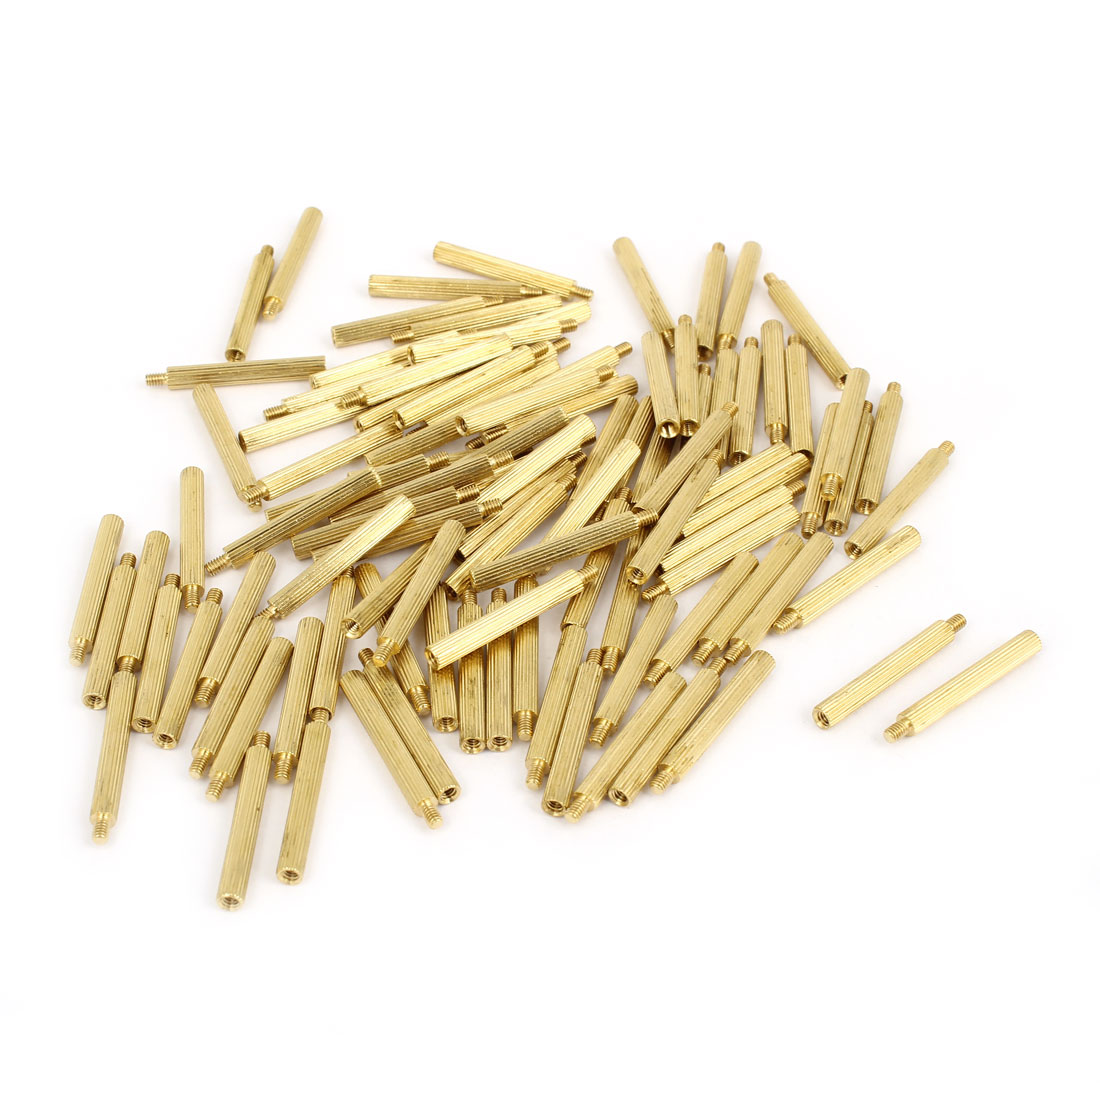 100 Pcs M2 Female Thread Cylindrical Brass Stand-off Support M2x22mm